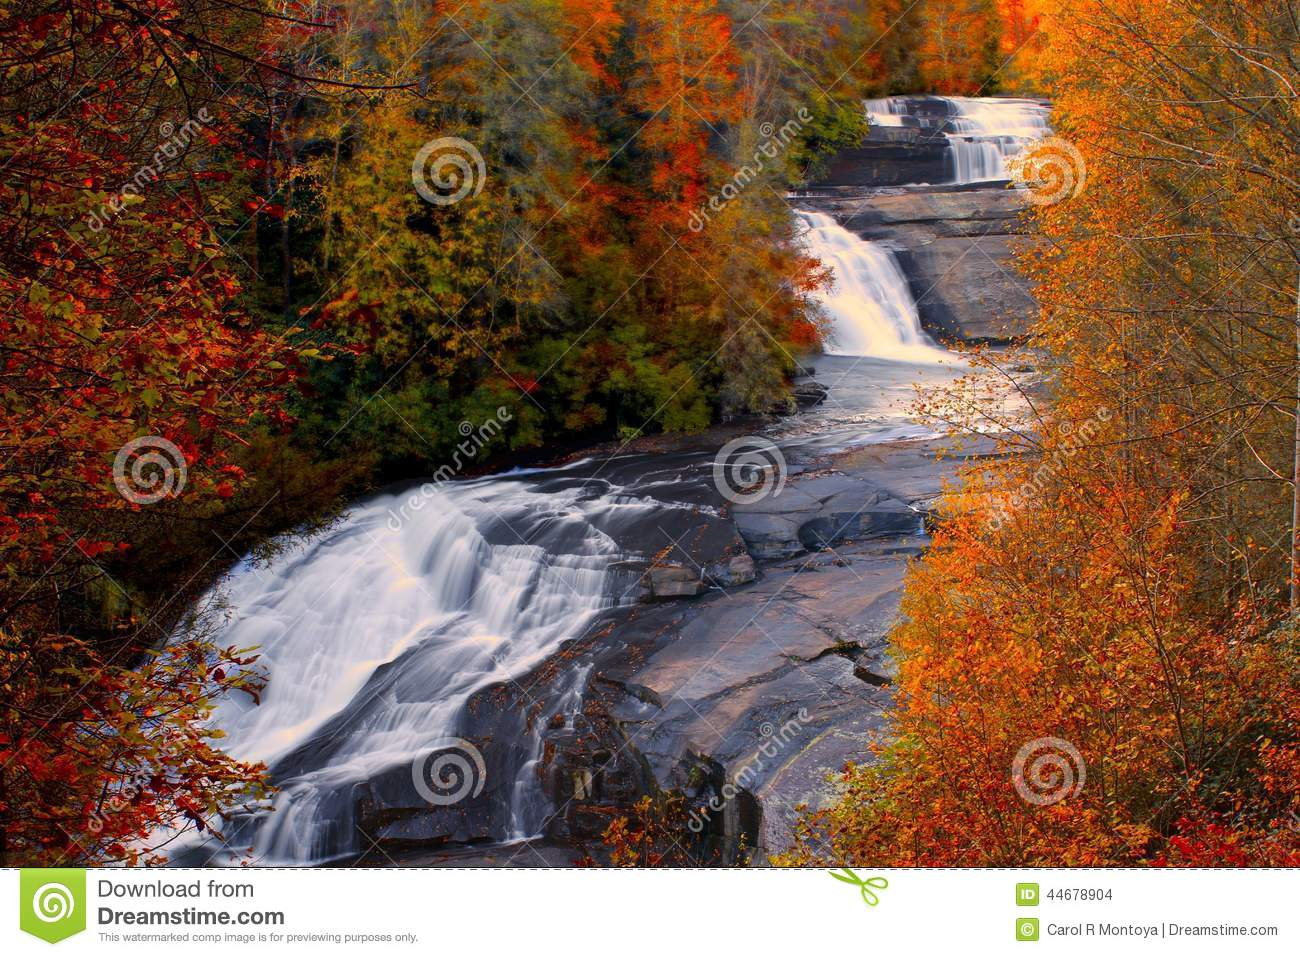 dupont state forest map with Stock Photo Fall Triple Falls Dupont State Forest Western North Carolina Image44678904 on New Waterfall Drives Maps For Asheville Nc Mountains as well Stock Photo Fall Forest Birch Autumn Orange Yellow View Above Image52067342 in addition Stock Photo Fall Triple Falls Dupont State Forest Western North Carolina Image44678904 as well 1FAAM Dupont State Forest Transylvania County North Carolina in addition 1PCpi Dupont State Forest Transylvania County North Carolina.